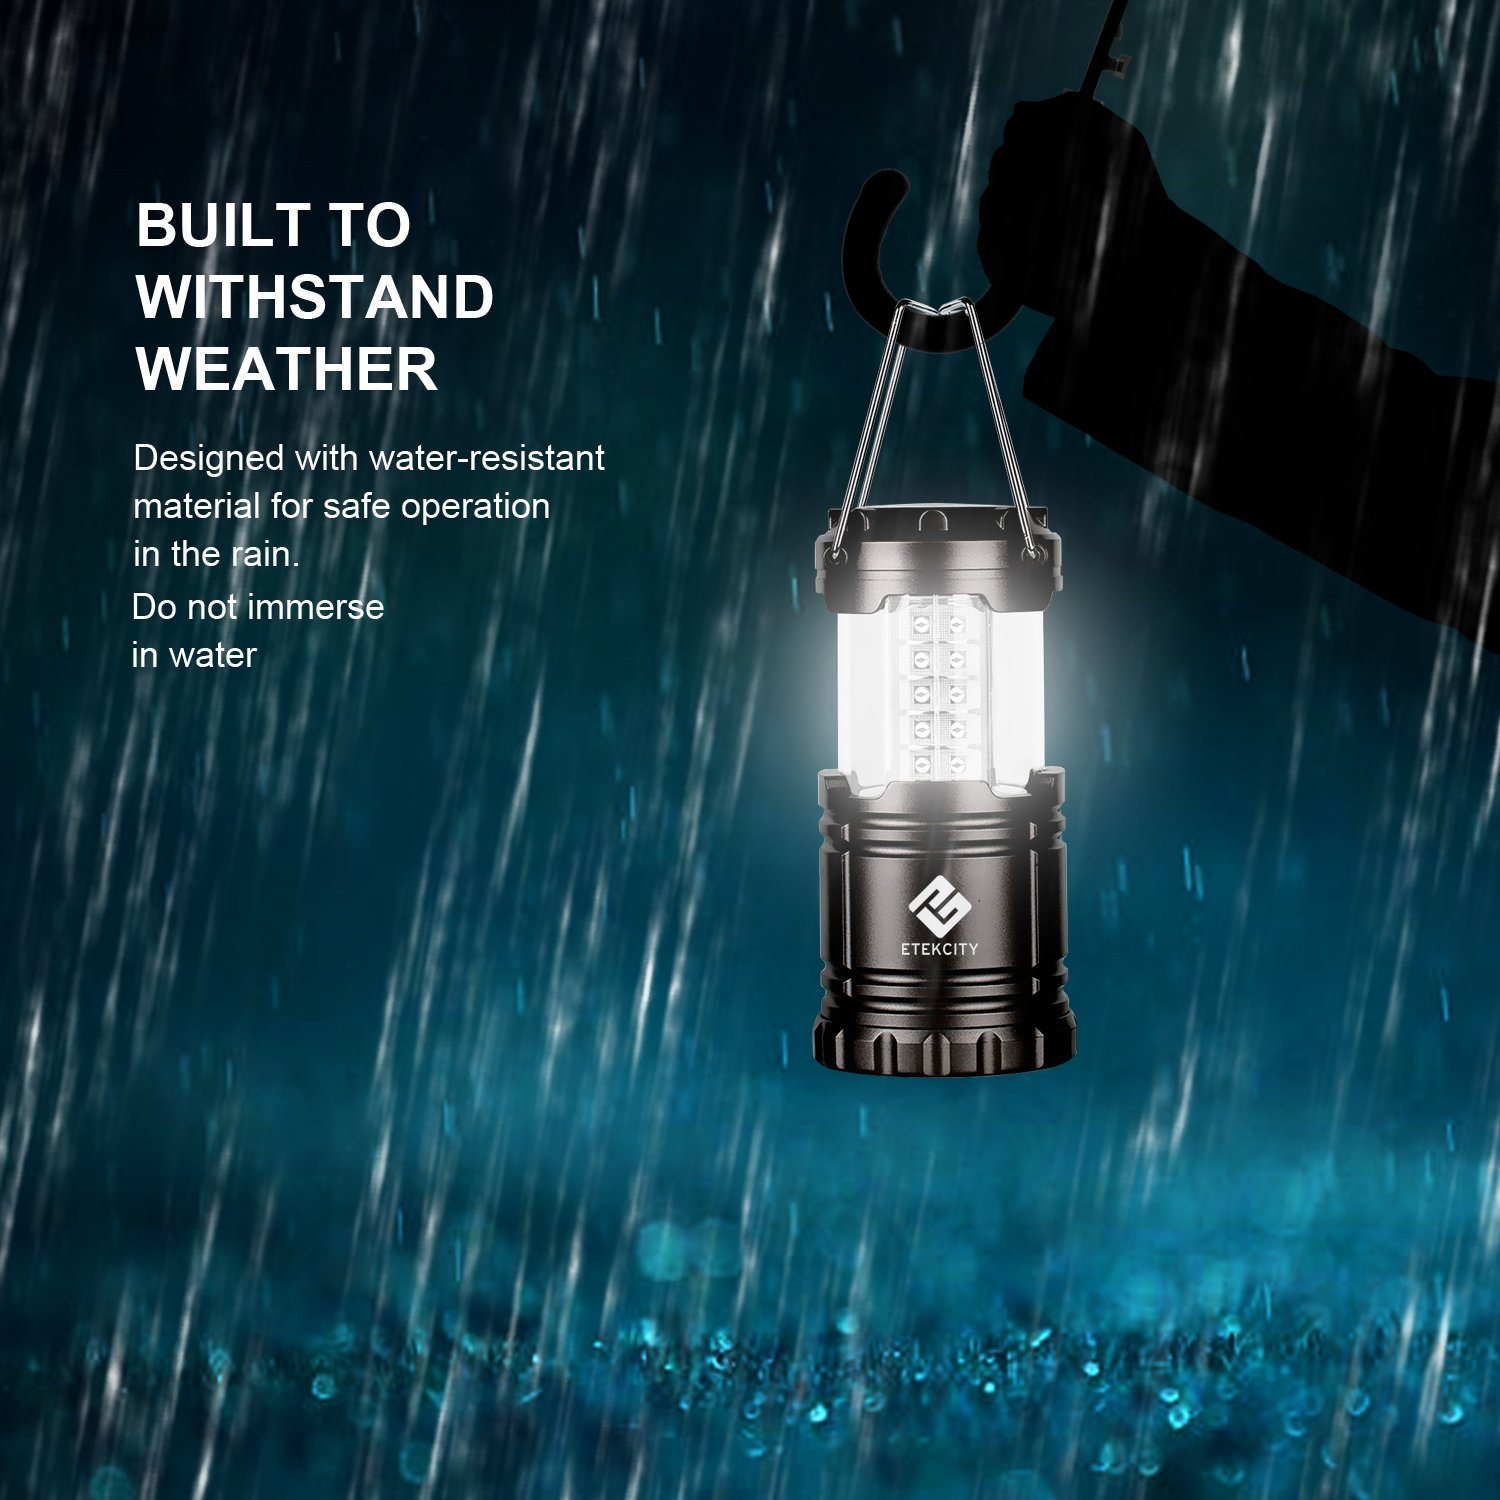 Etekcity CL10 Portable LED Camping Lantern Flashlight with 3 AA Batteries-Survival Light for Emergency, Hurricane, Outage (Black, Collapsible)